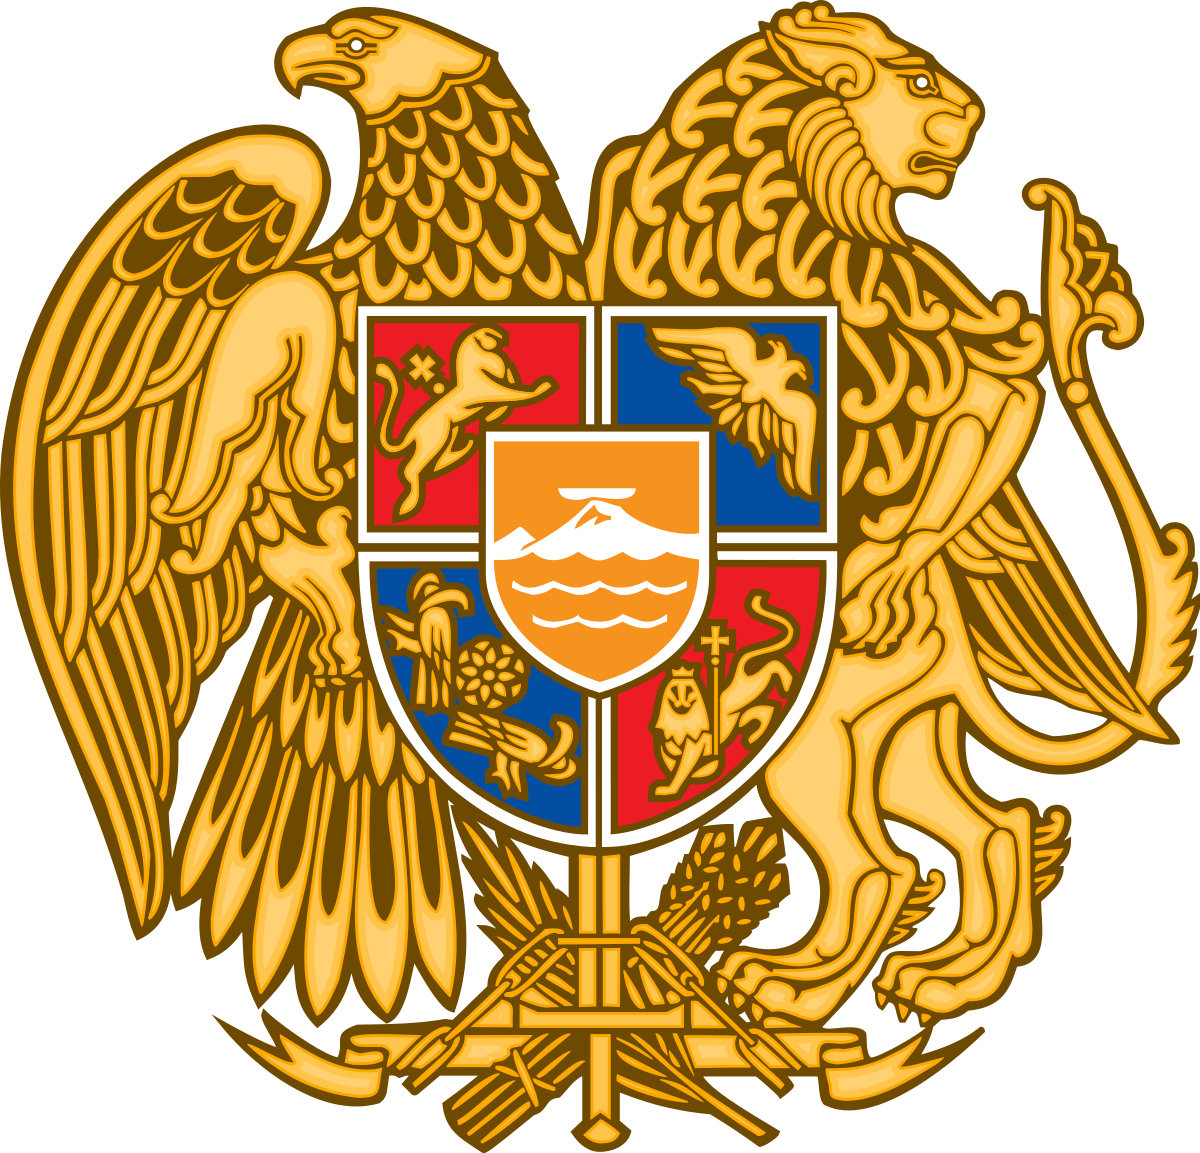 Coat of arms with two swords crossing png. Armenia wikipedia